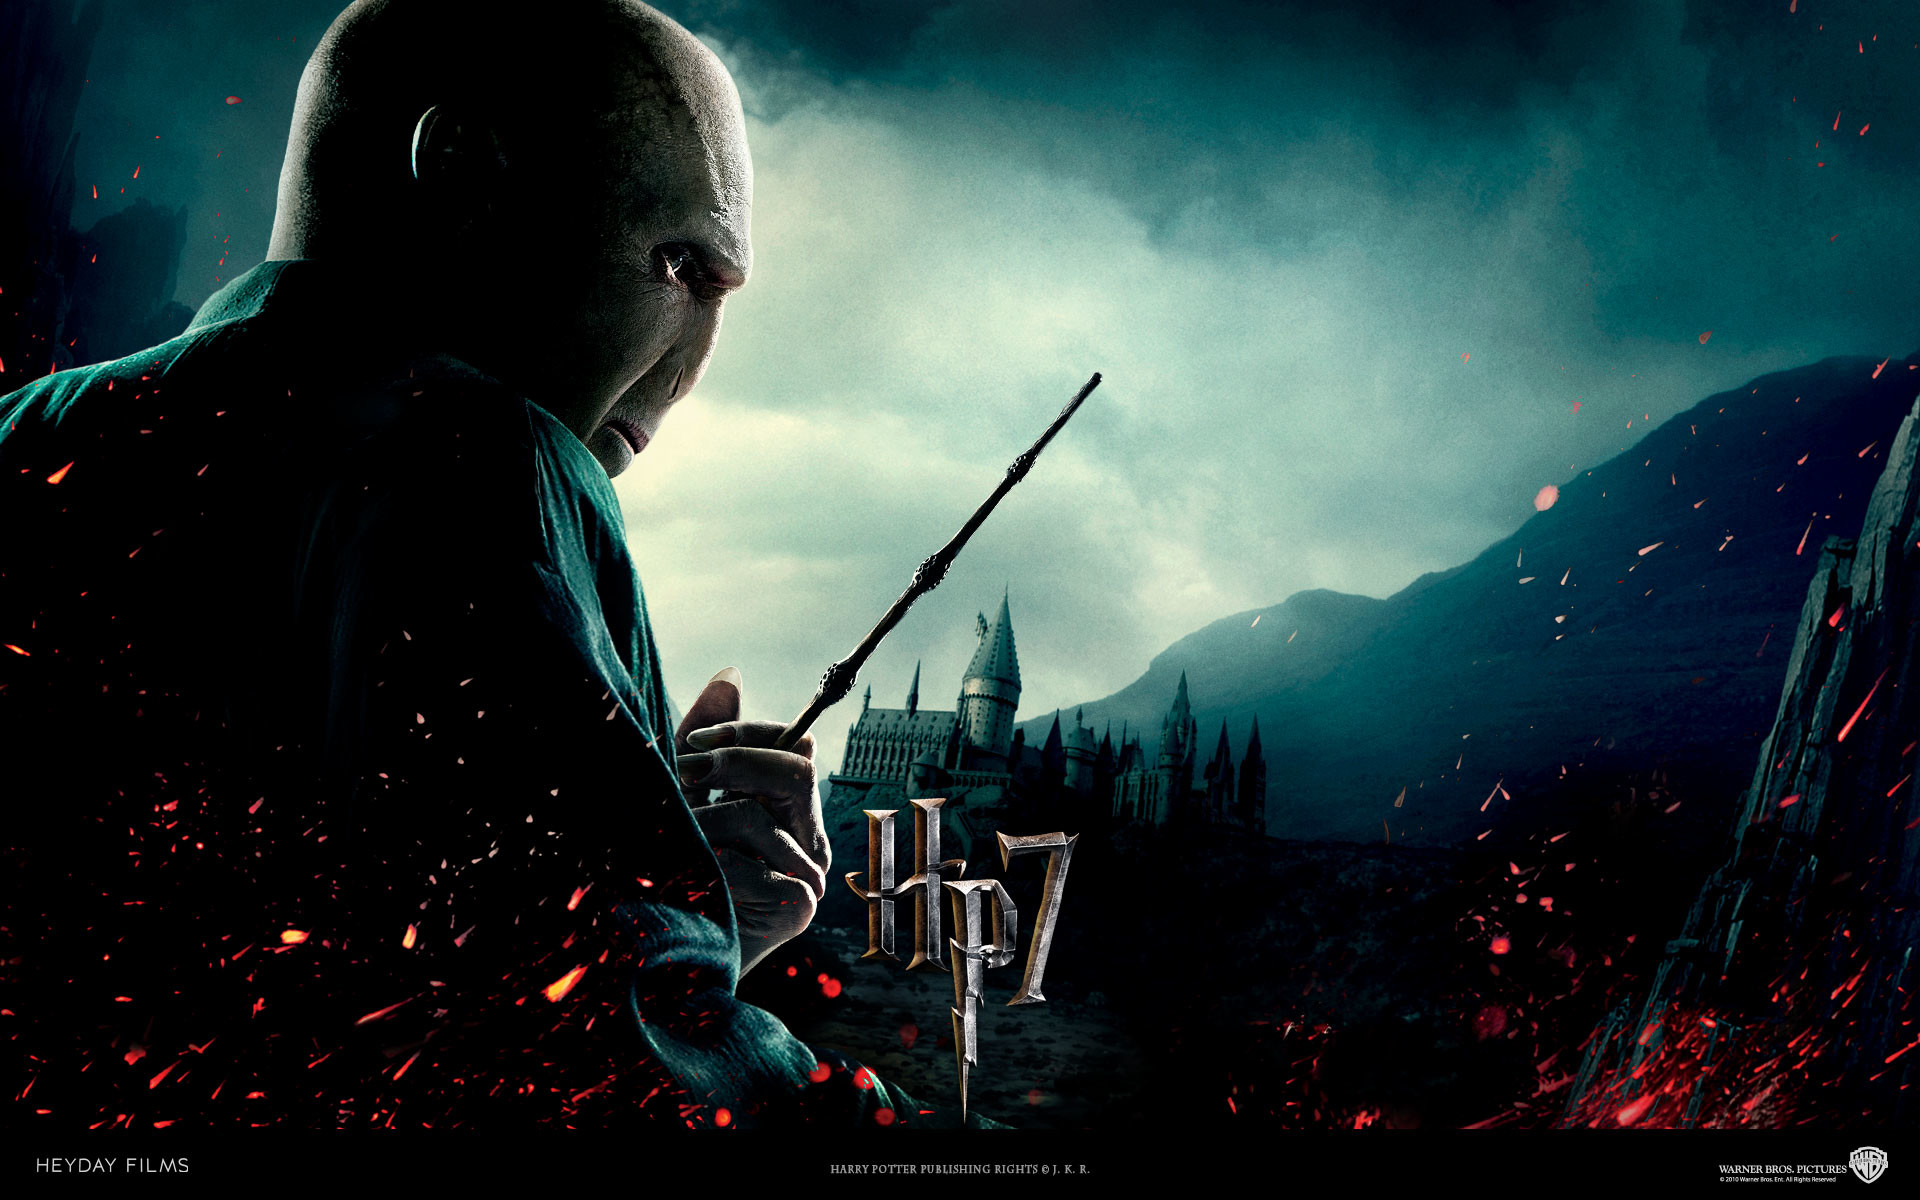 Harry Potter And The Deathly Hallows Part 2 Draco HD desktop wallpaper